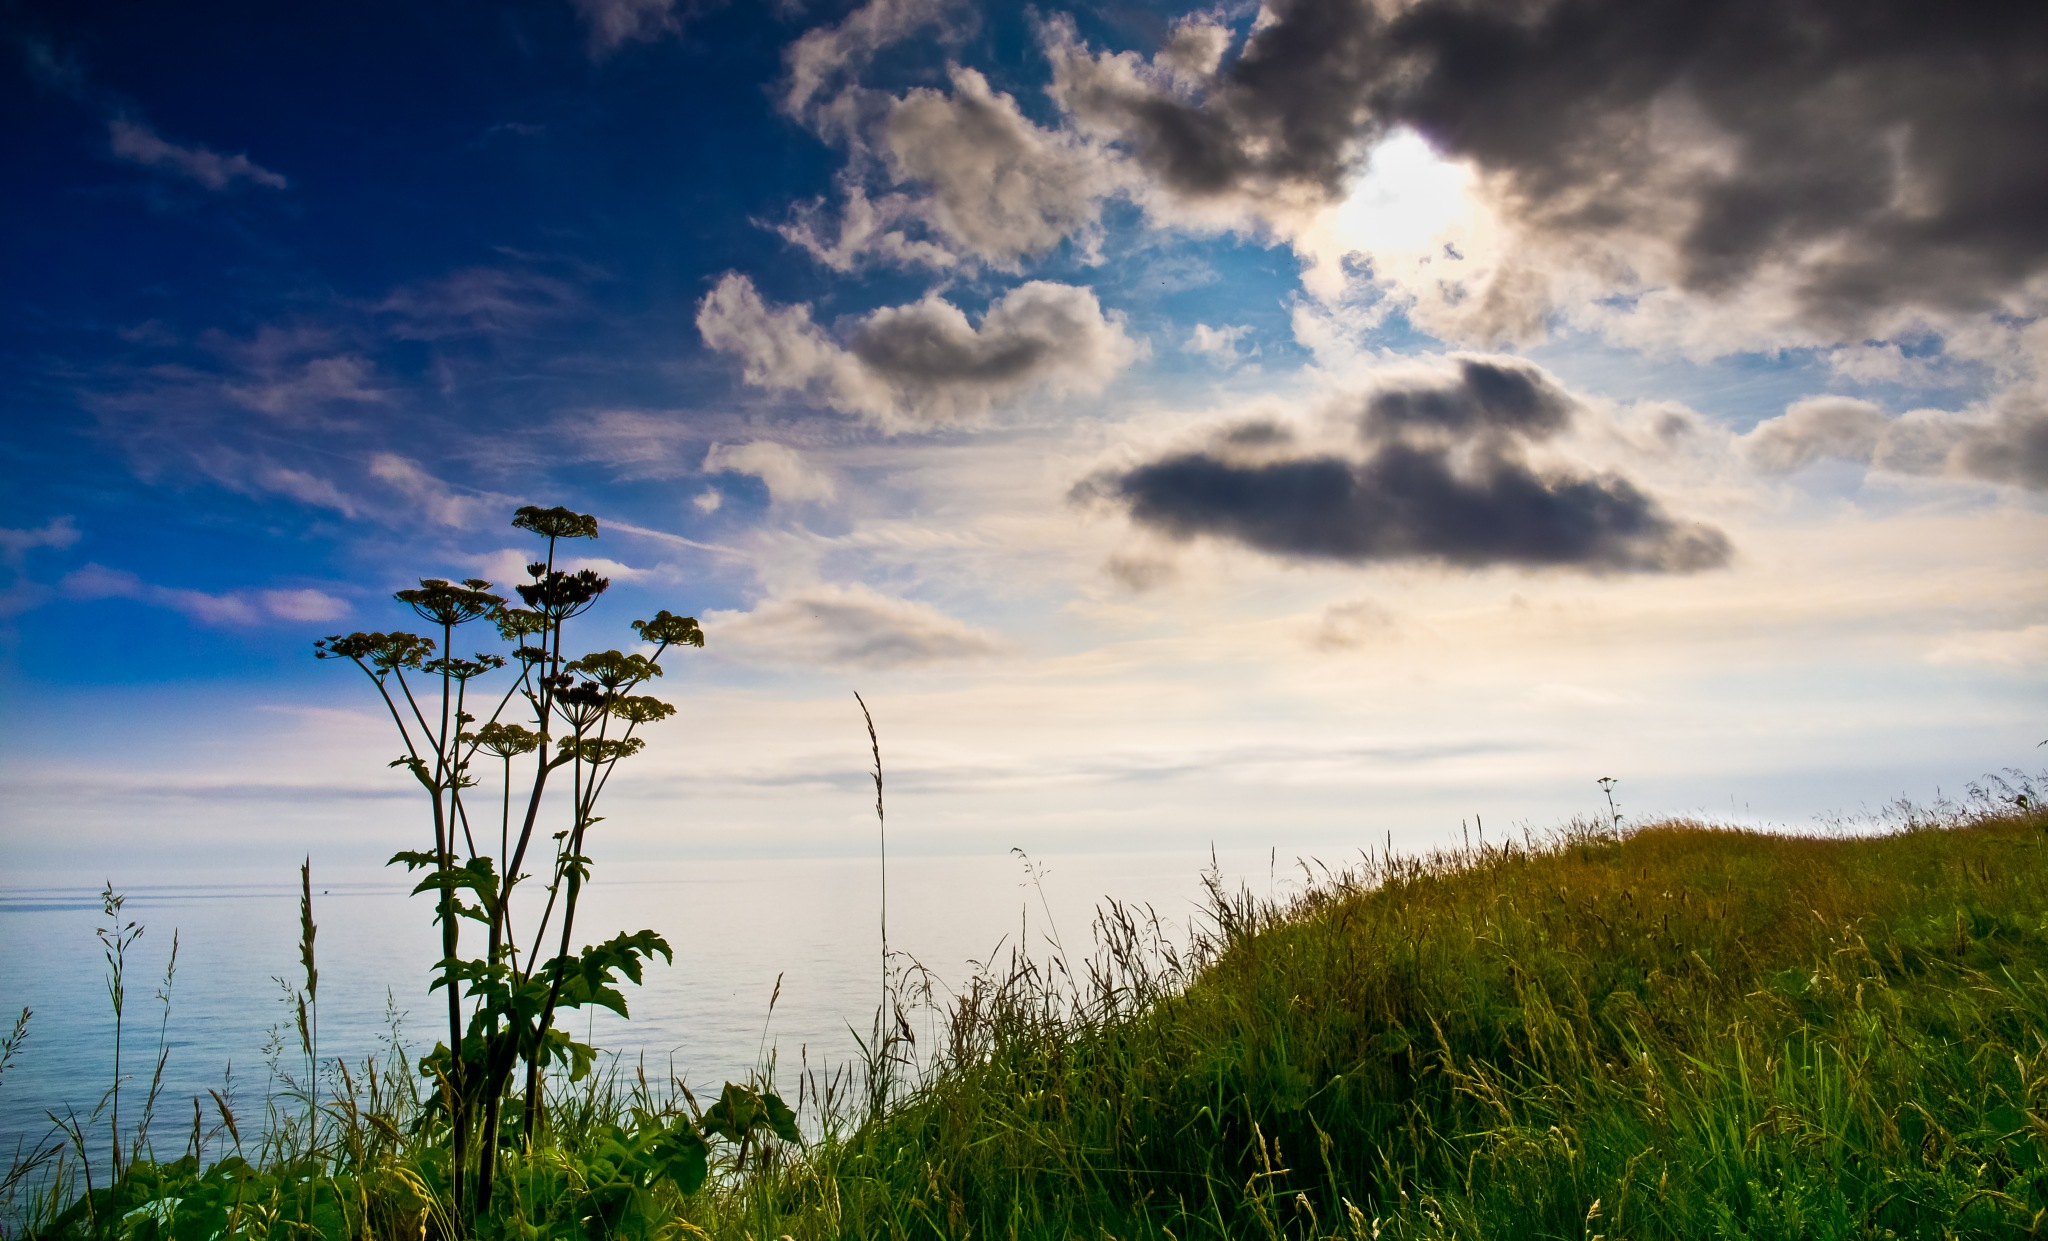 Cliff top Flora by Peter Edwardo Vicente.